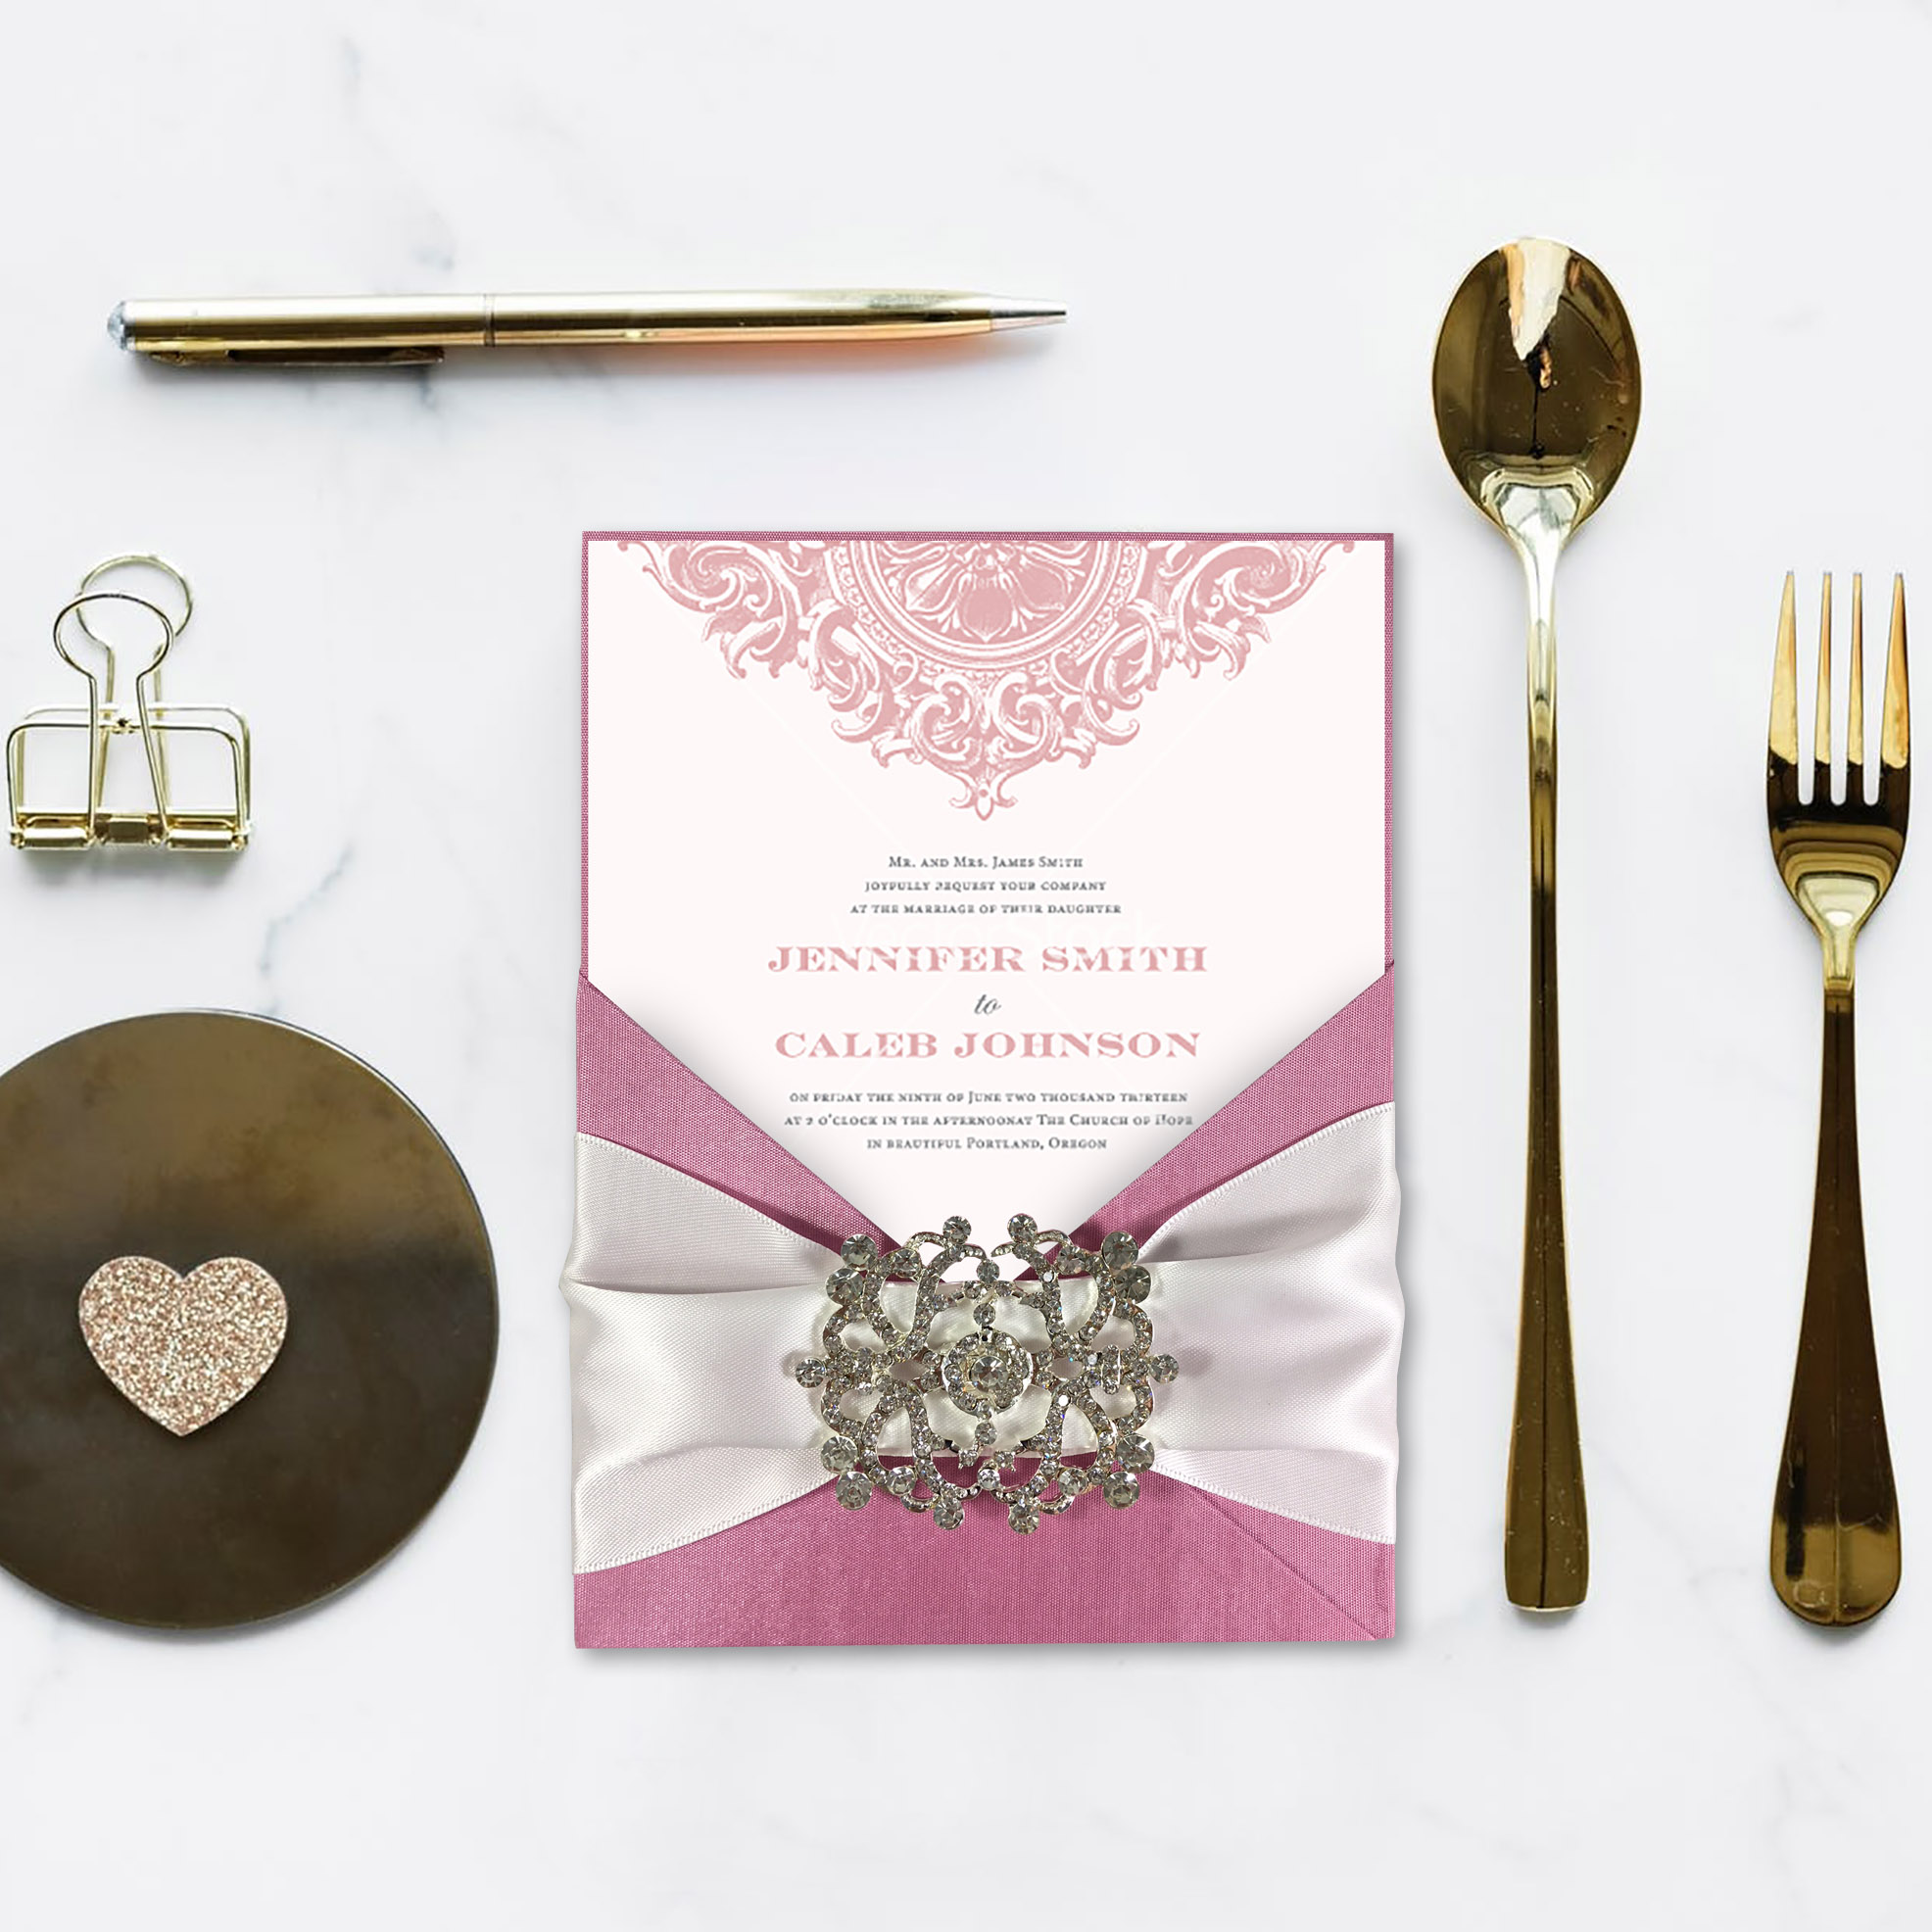 Luxury wedding invitation creation by Dennis Wisser